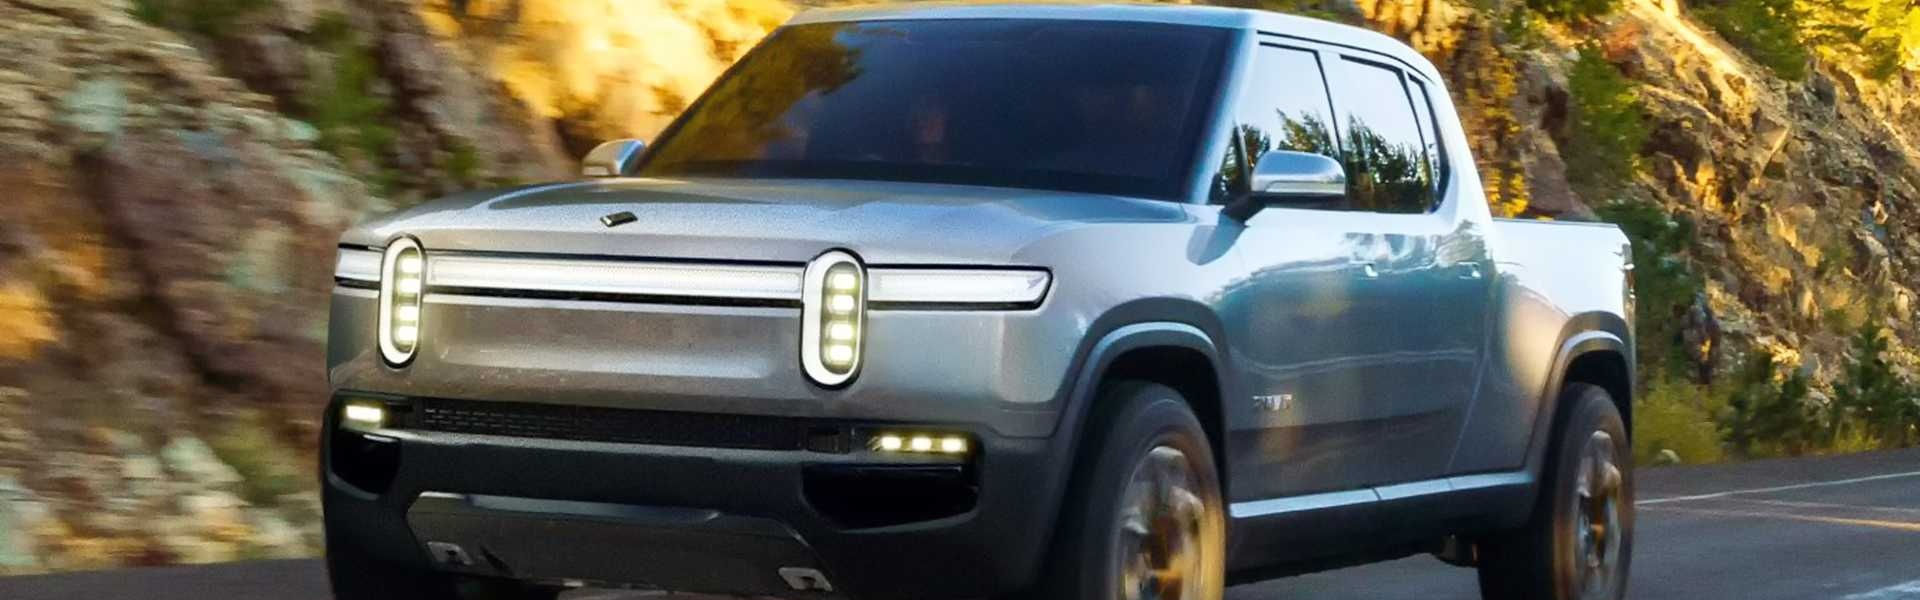 rivian-r1t-electric-pickup-truck.jpg